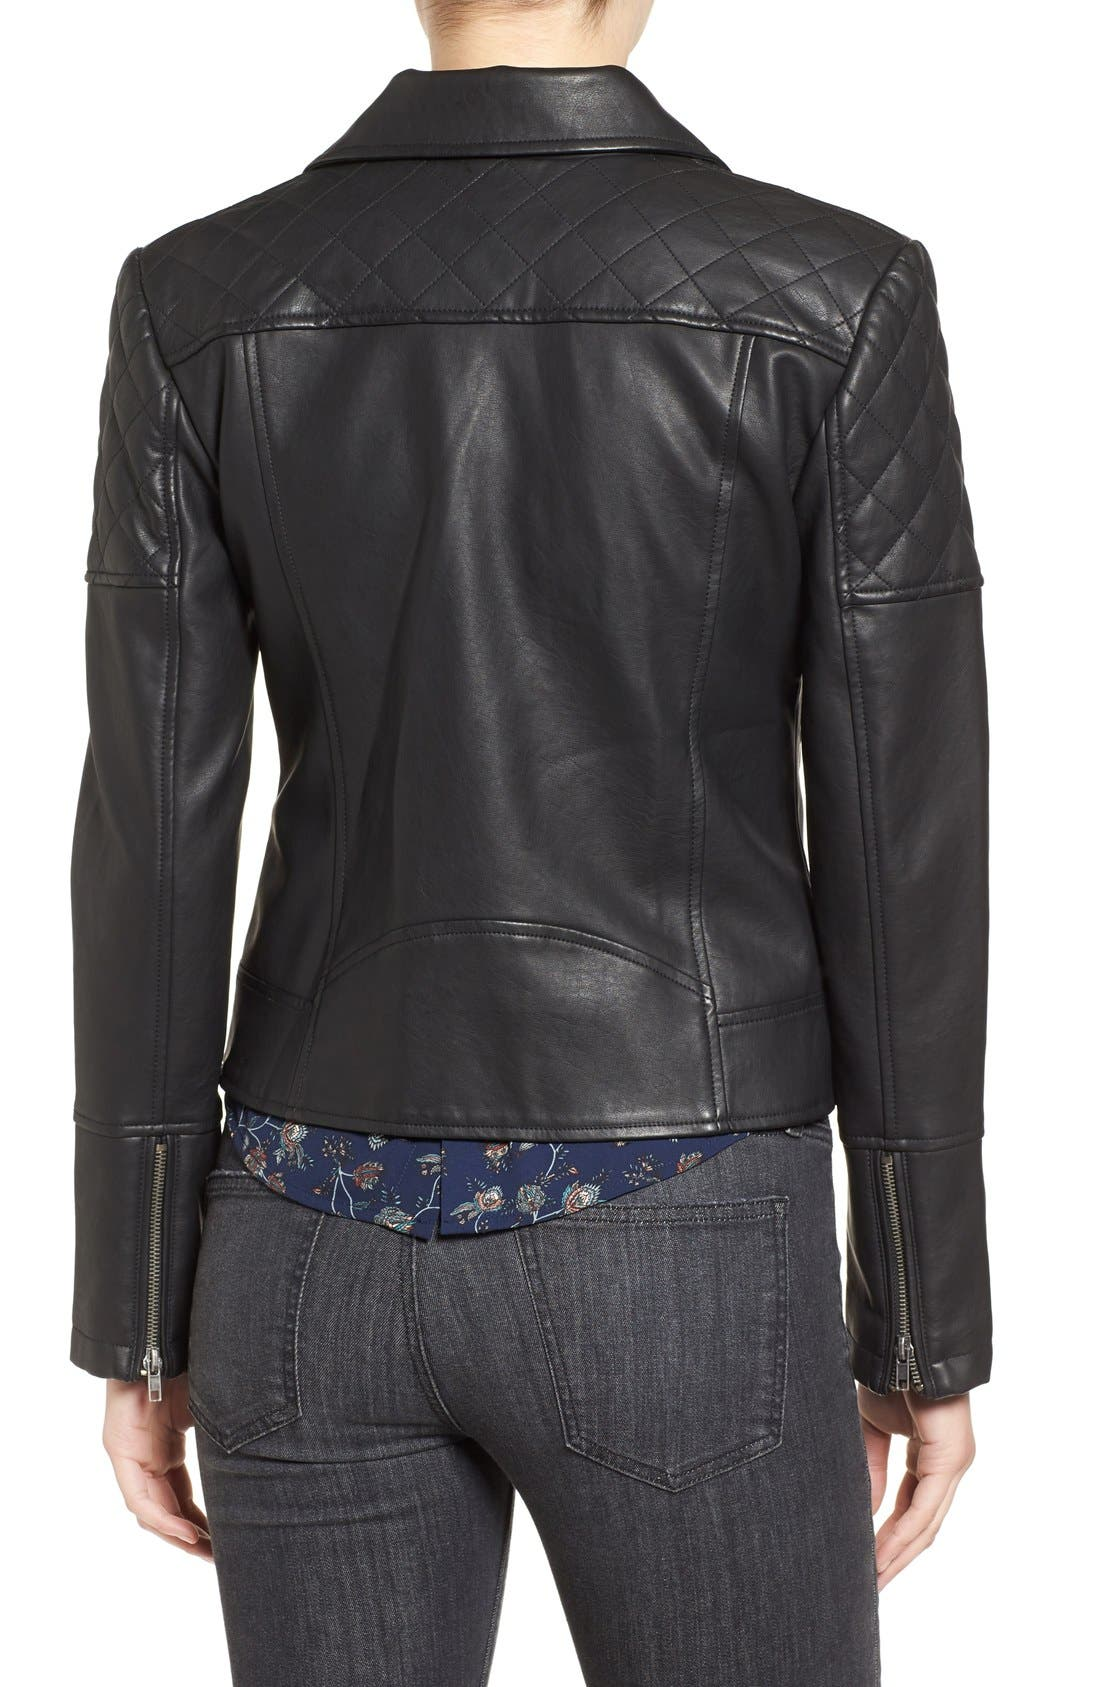 CUPCAKES AND CASHMERE, 'Breck' Faux Leather Moto Jacket, Alternate thumbnail 3, color, 001